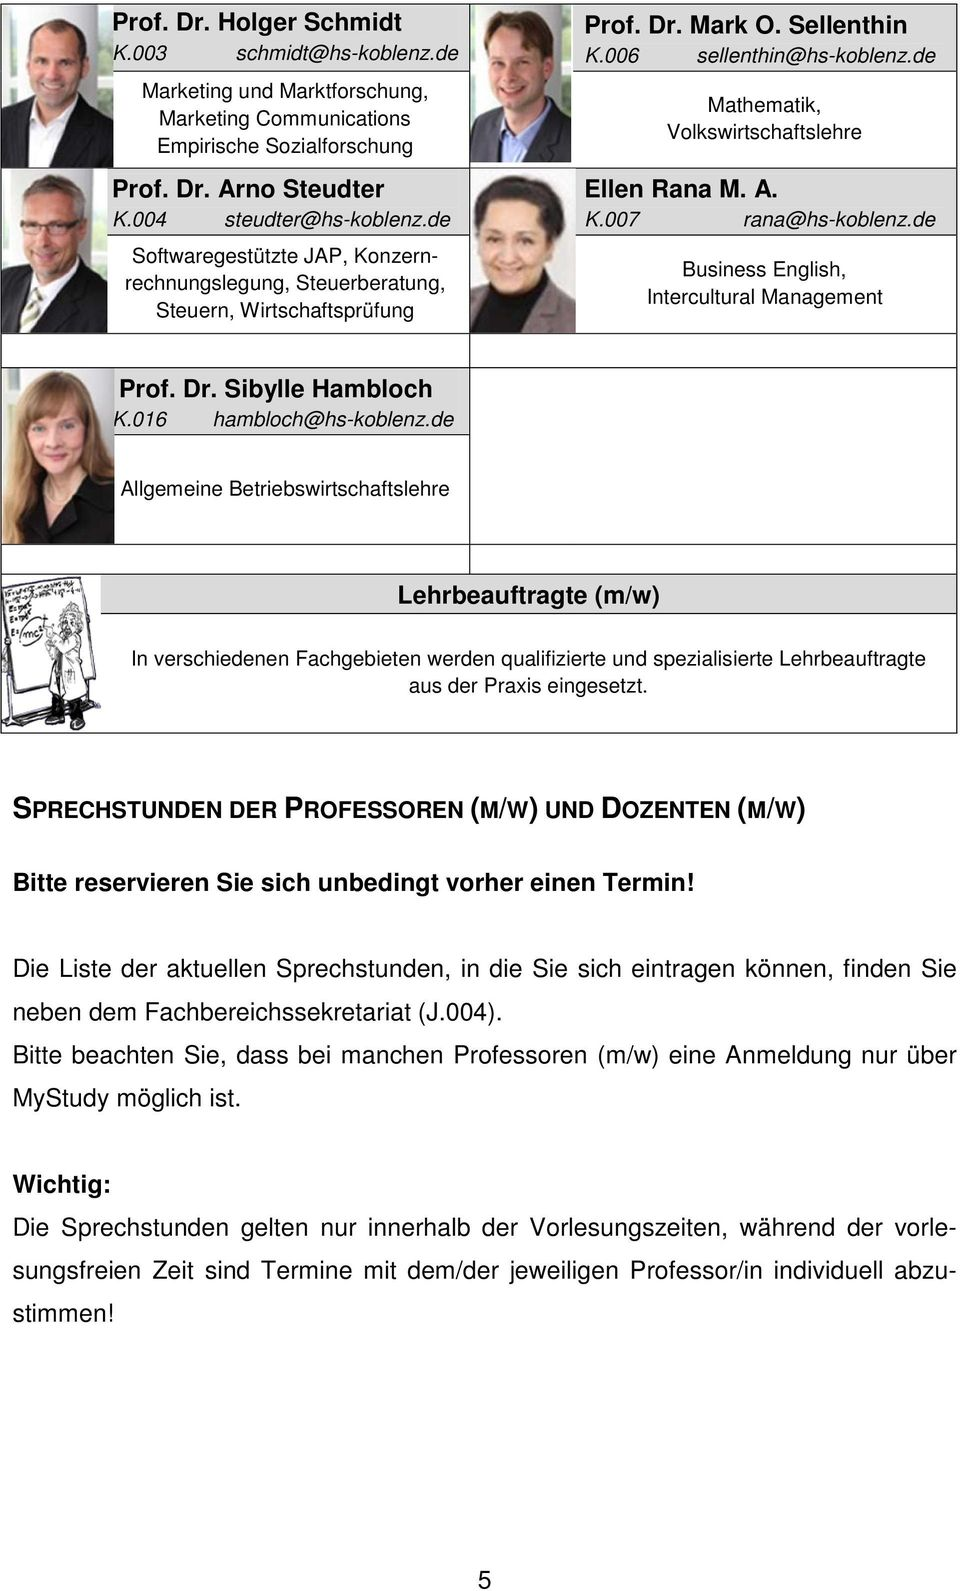 de Mathematik, Volkswirtschaftslehre Ellen Rana M. A. K.007 rana@hs-koblenz.de Business English, Intercultural Management Prof. Dr. Sibylle Hambloch K.016 hambloch@hs-koblenz.